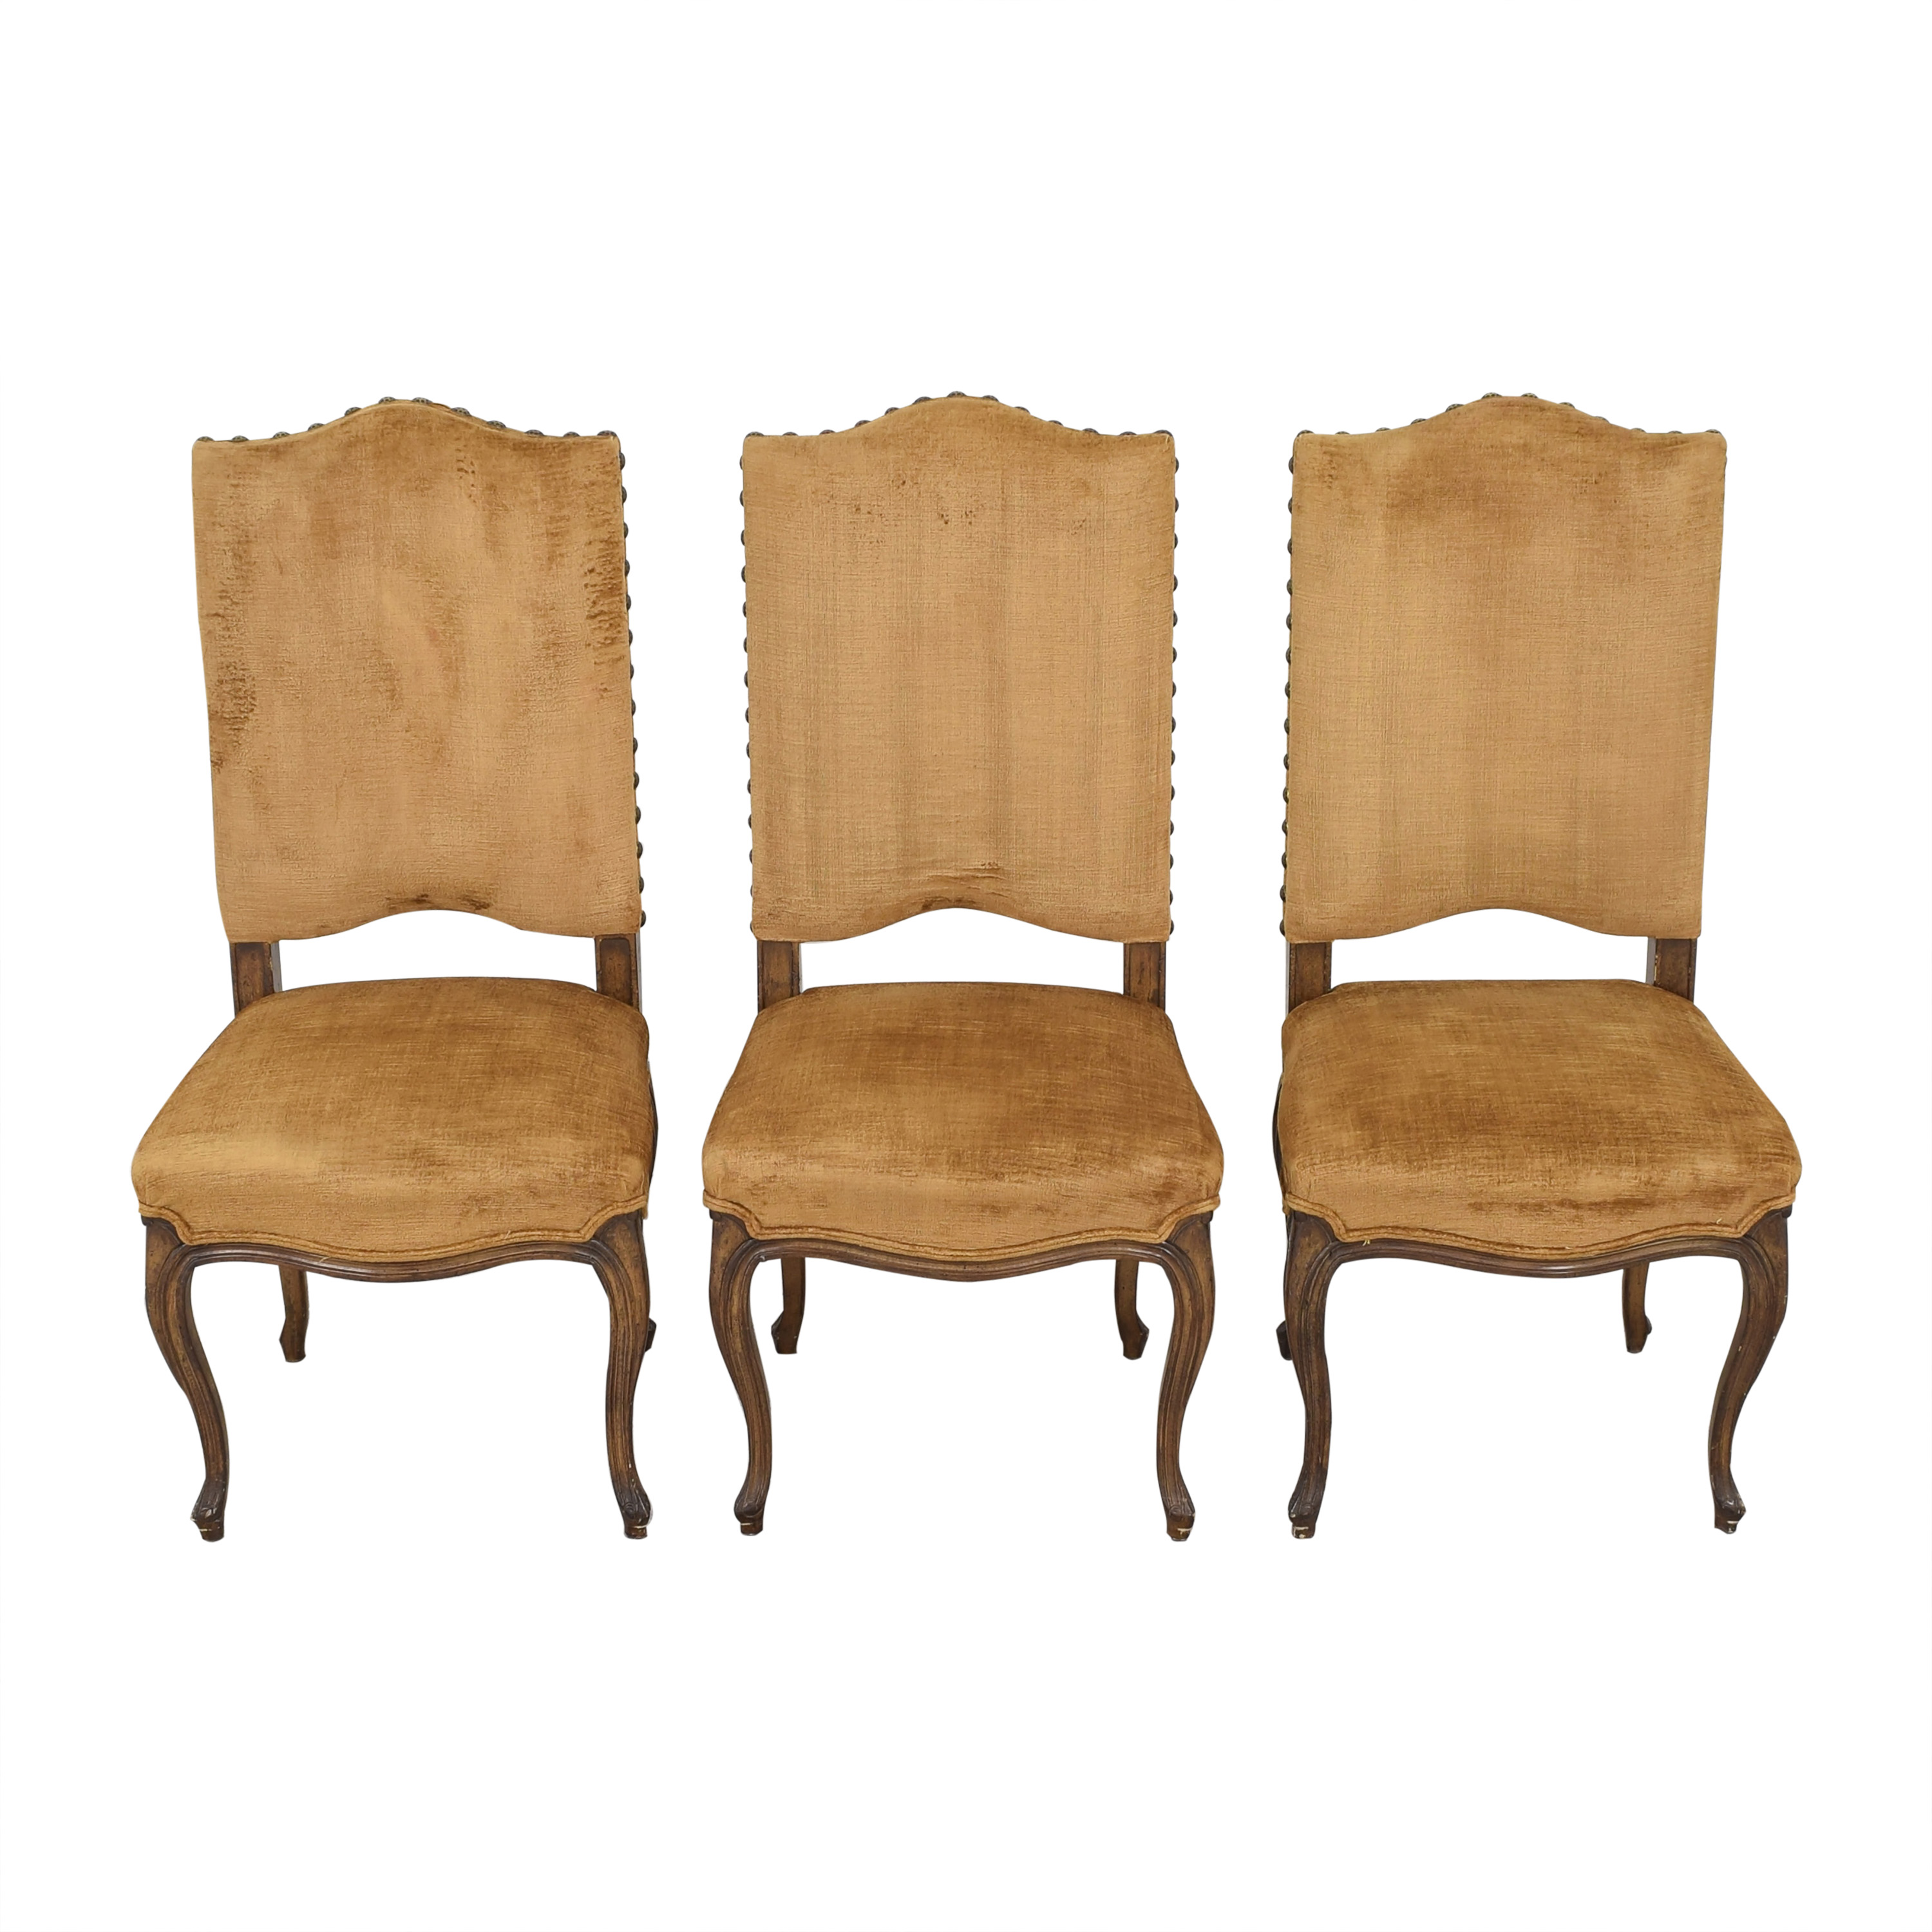 Upholstered Nail Head Dining Chairs dimensions